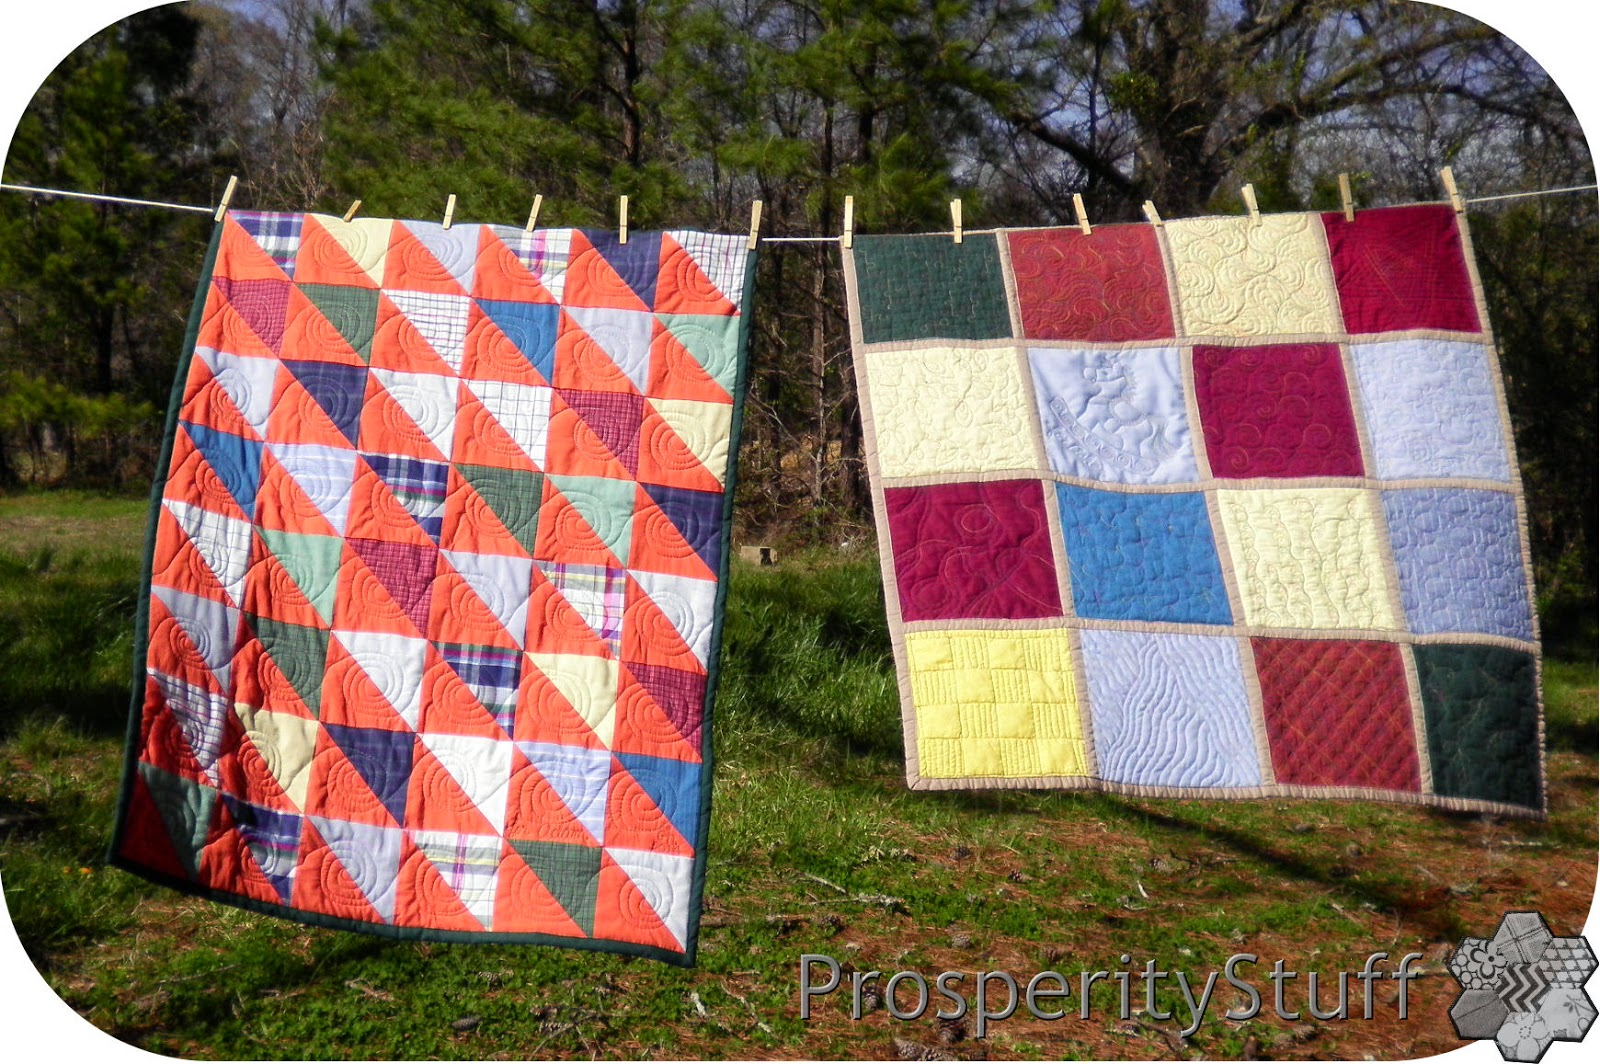 ProsperityStuff Baby Quilts on Clothesline